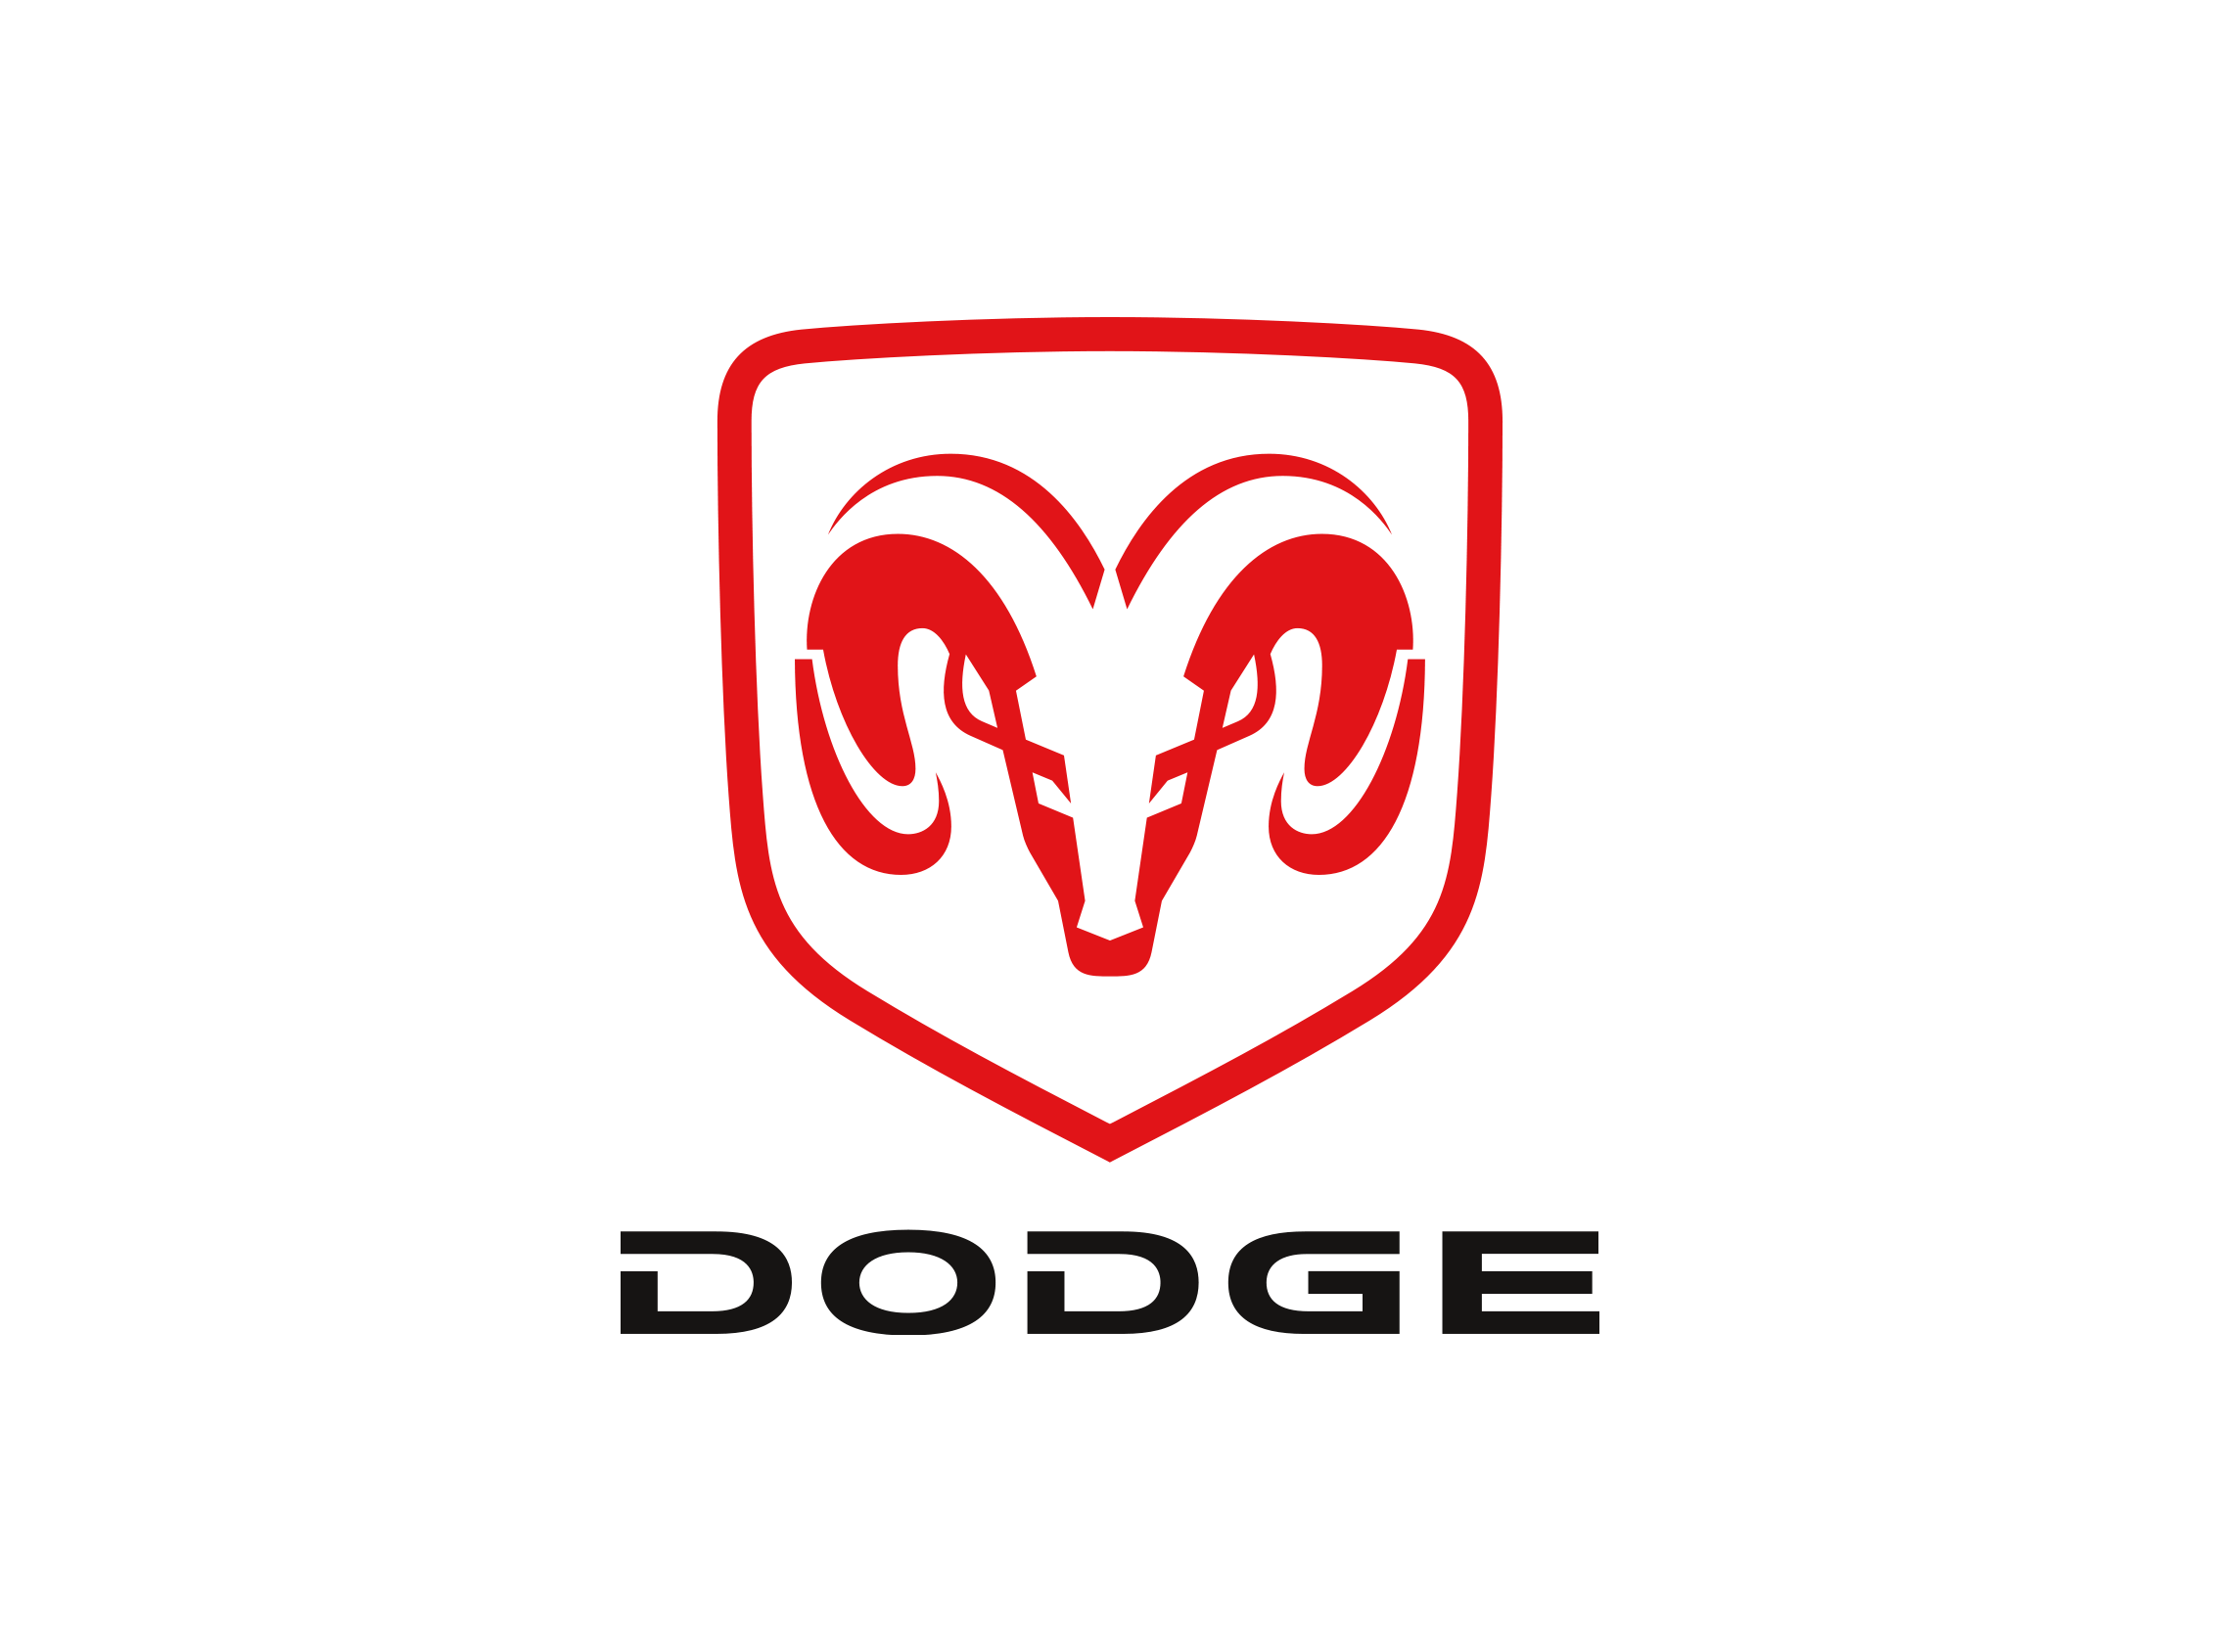 DODGE MOTOR IMPORT BRANDS VOITURE IMPORT USA MIAMI IMPORT VOITURE EUROP IMPORT USA MOTOR IMPORT7 - NISSAN importation voiture des Etats Unis NISSAN votre mandataire automobile usa